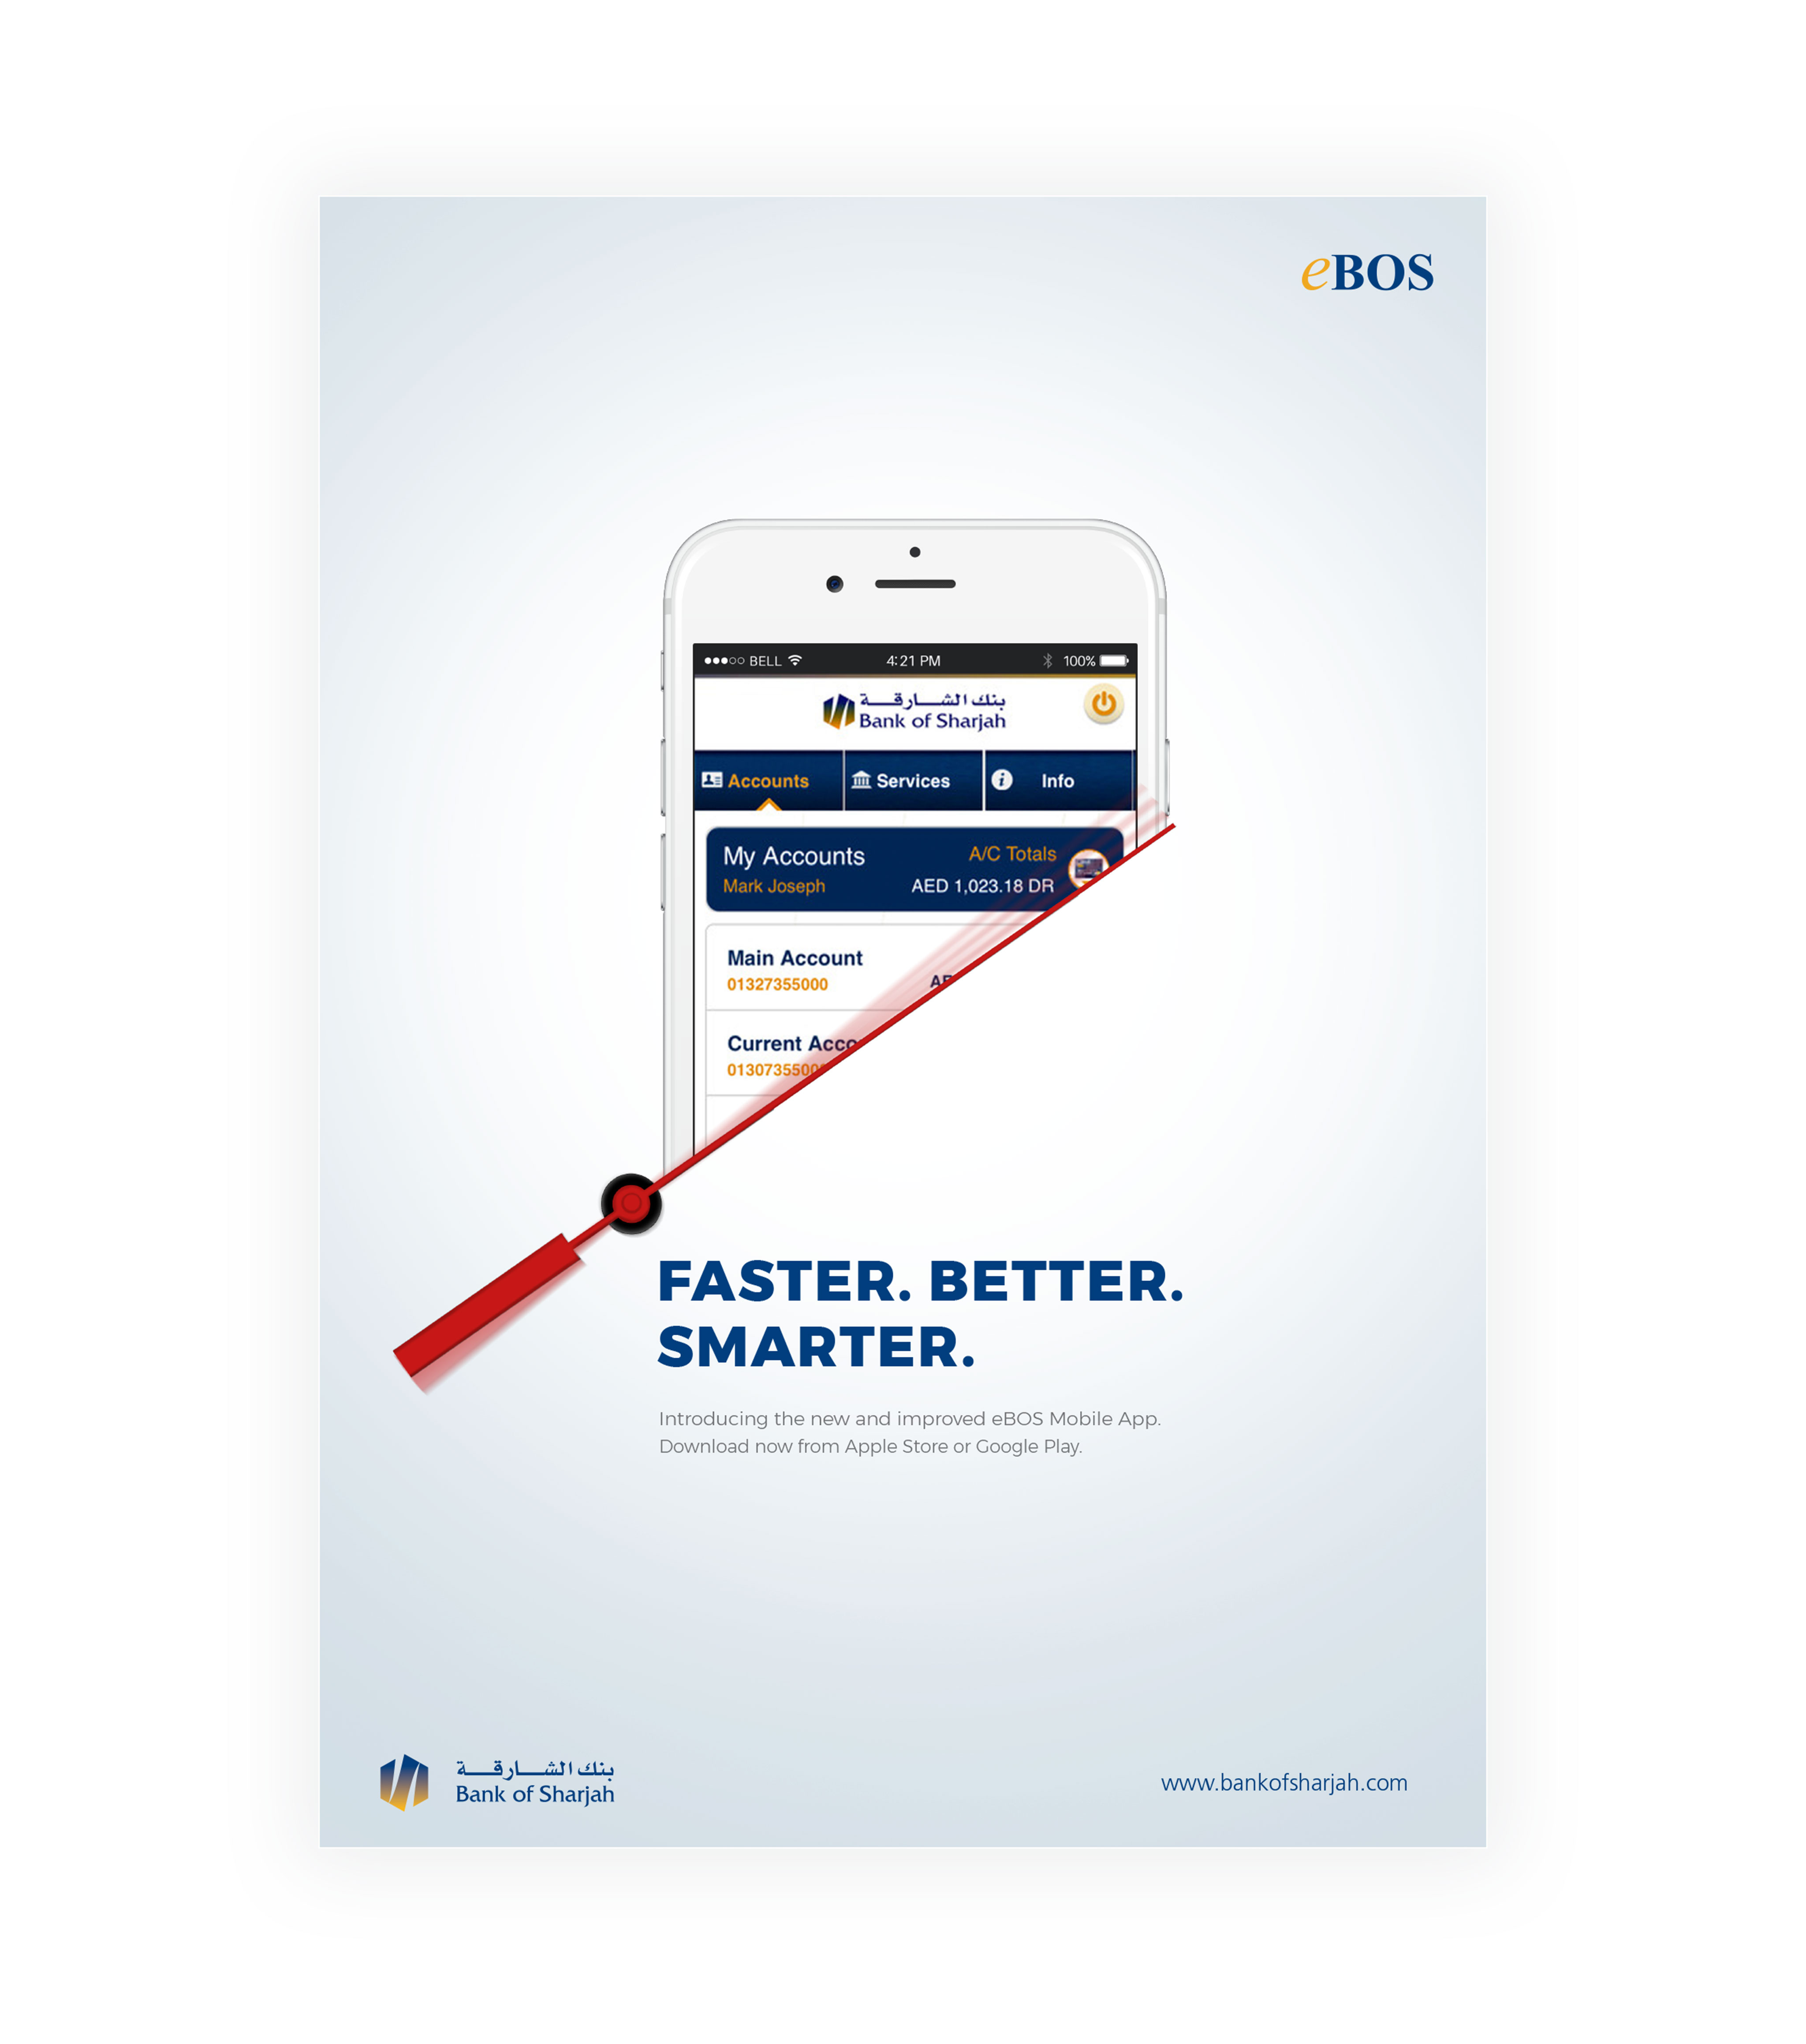 eBOS Mobile Application Posters